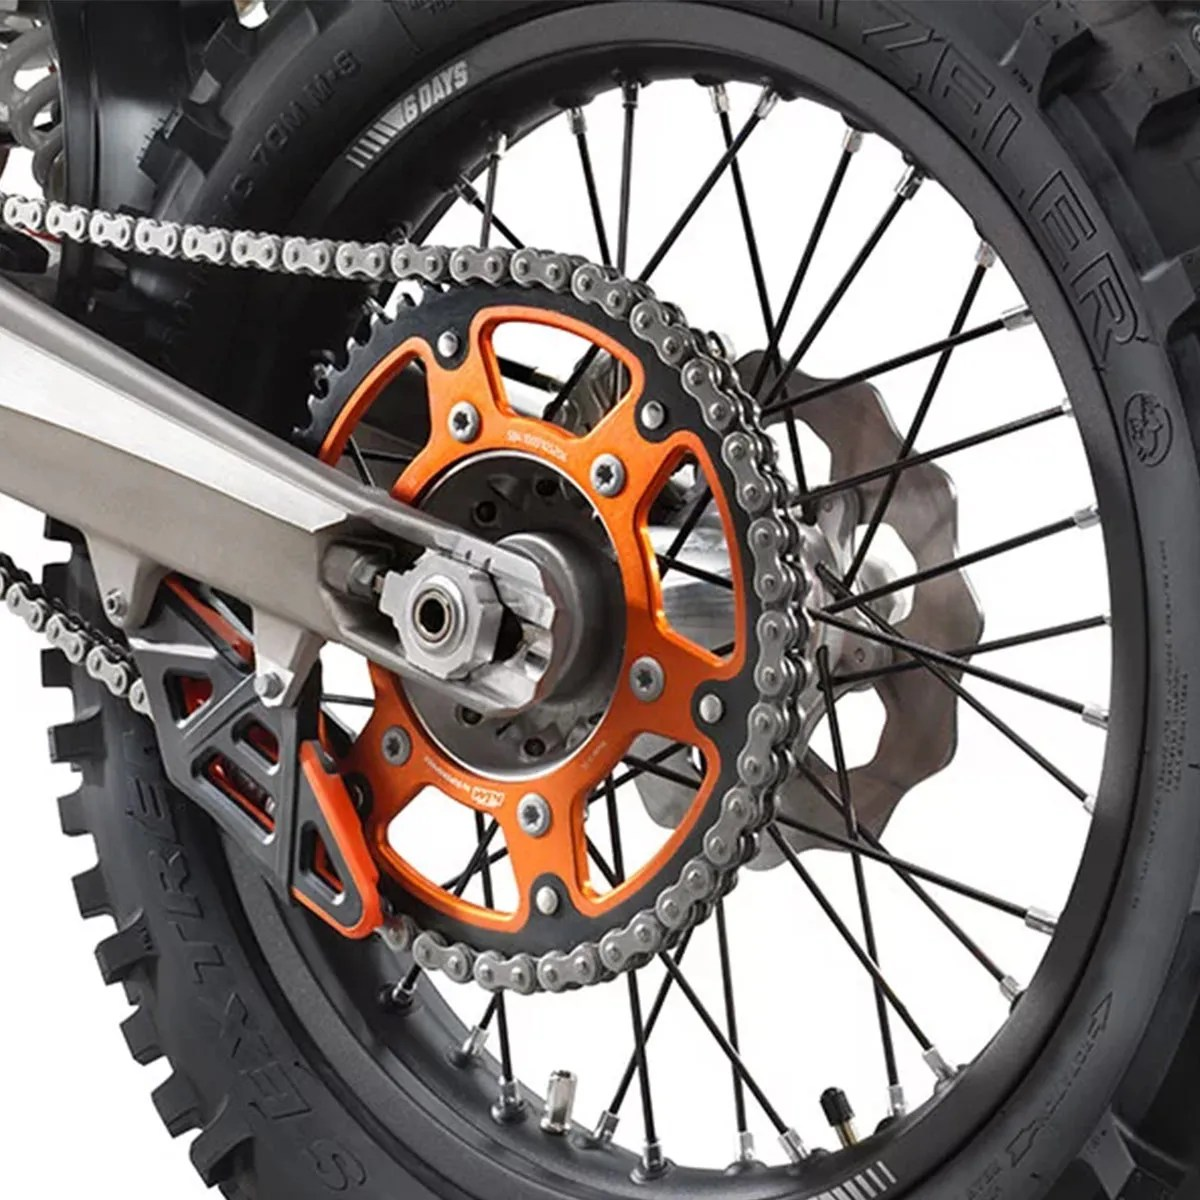 ROUE-ARRIERE-KTM-350-EXC-F-2020